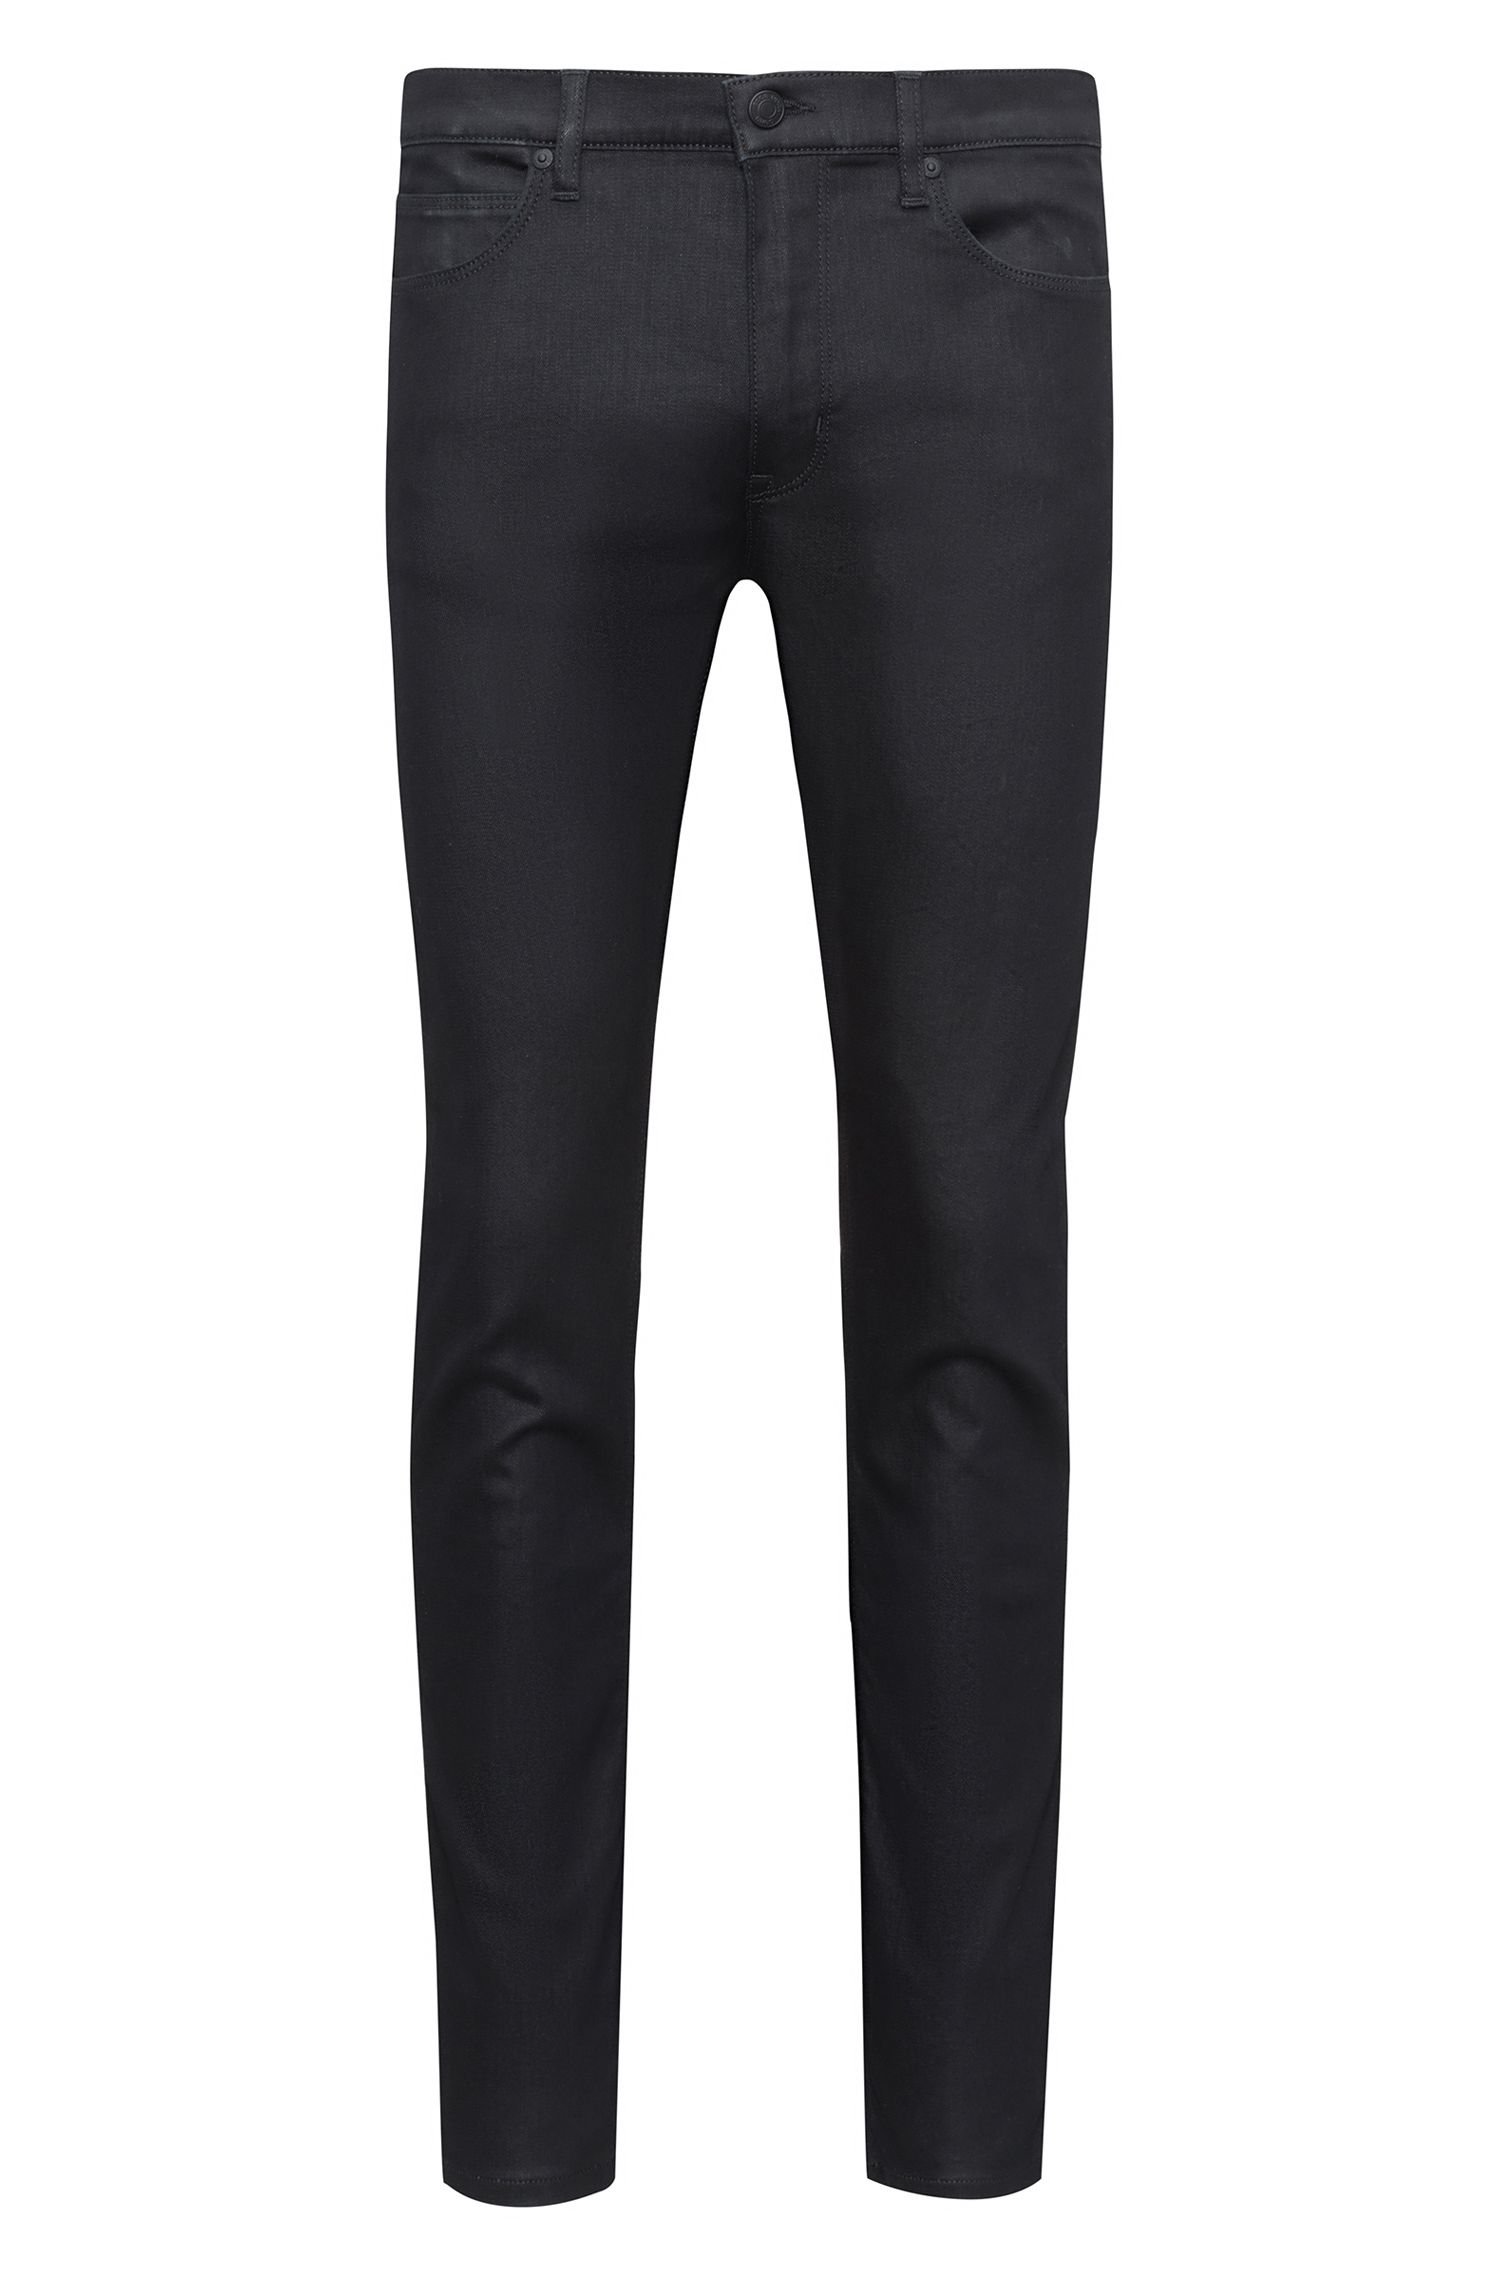 Skinny-fit black jeans with contrast stripe